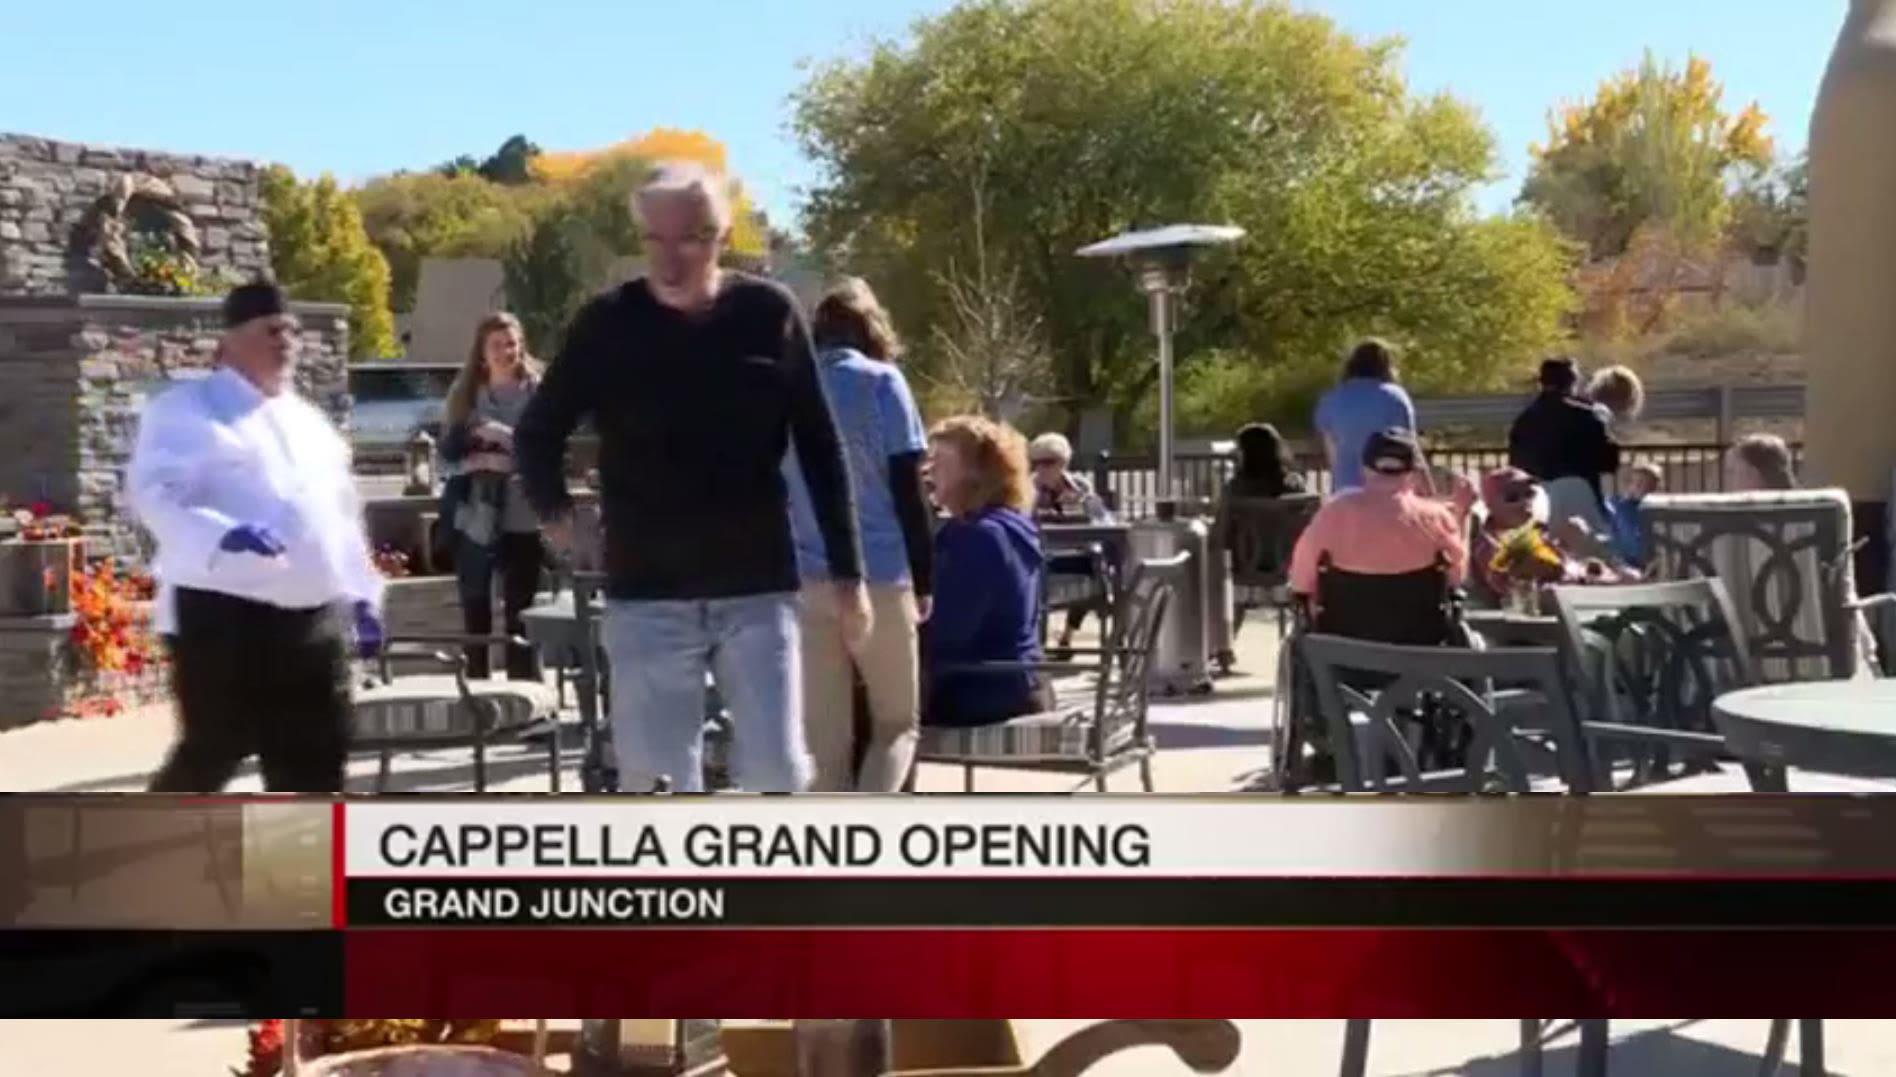 Cappella of Grand Junction Grand Opening